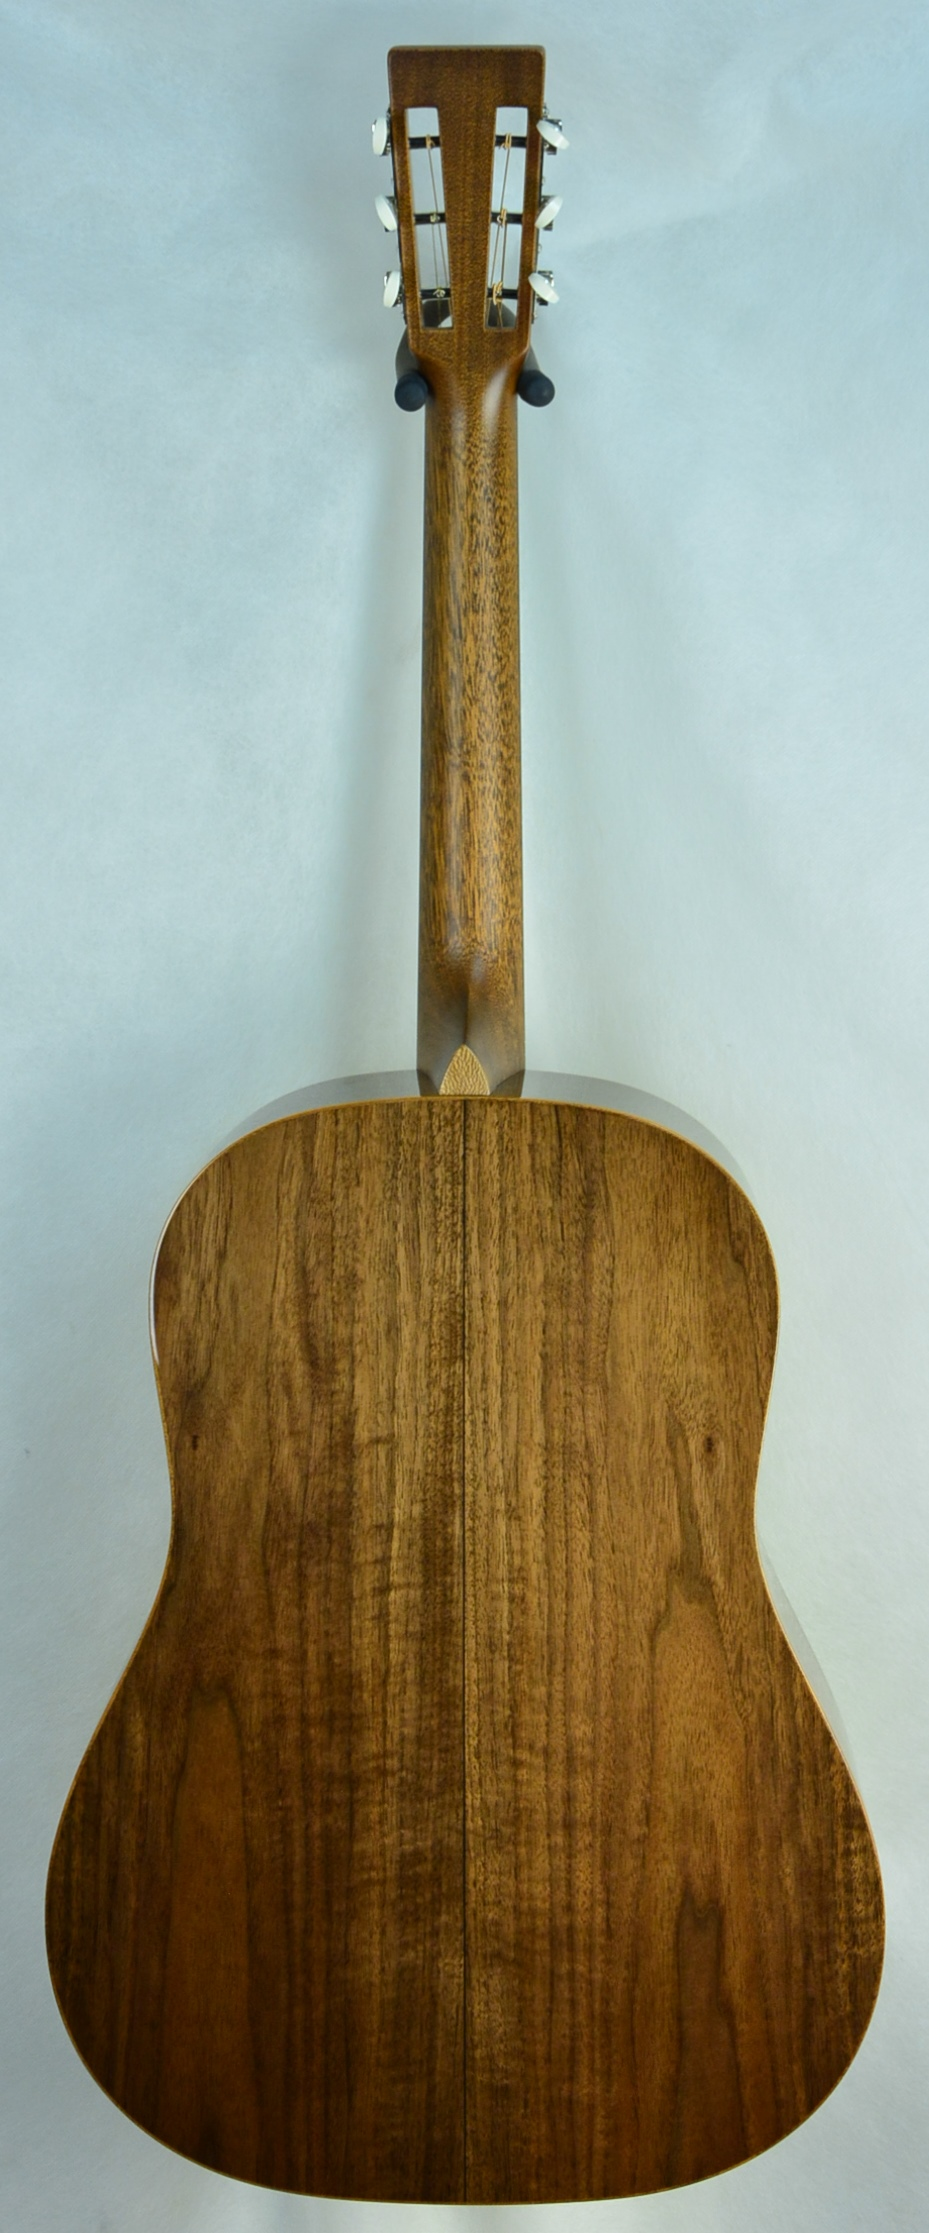 Q-2650124 S-1938283 D-12 Fret Black Walnut Adi (2).JPG